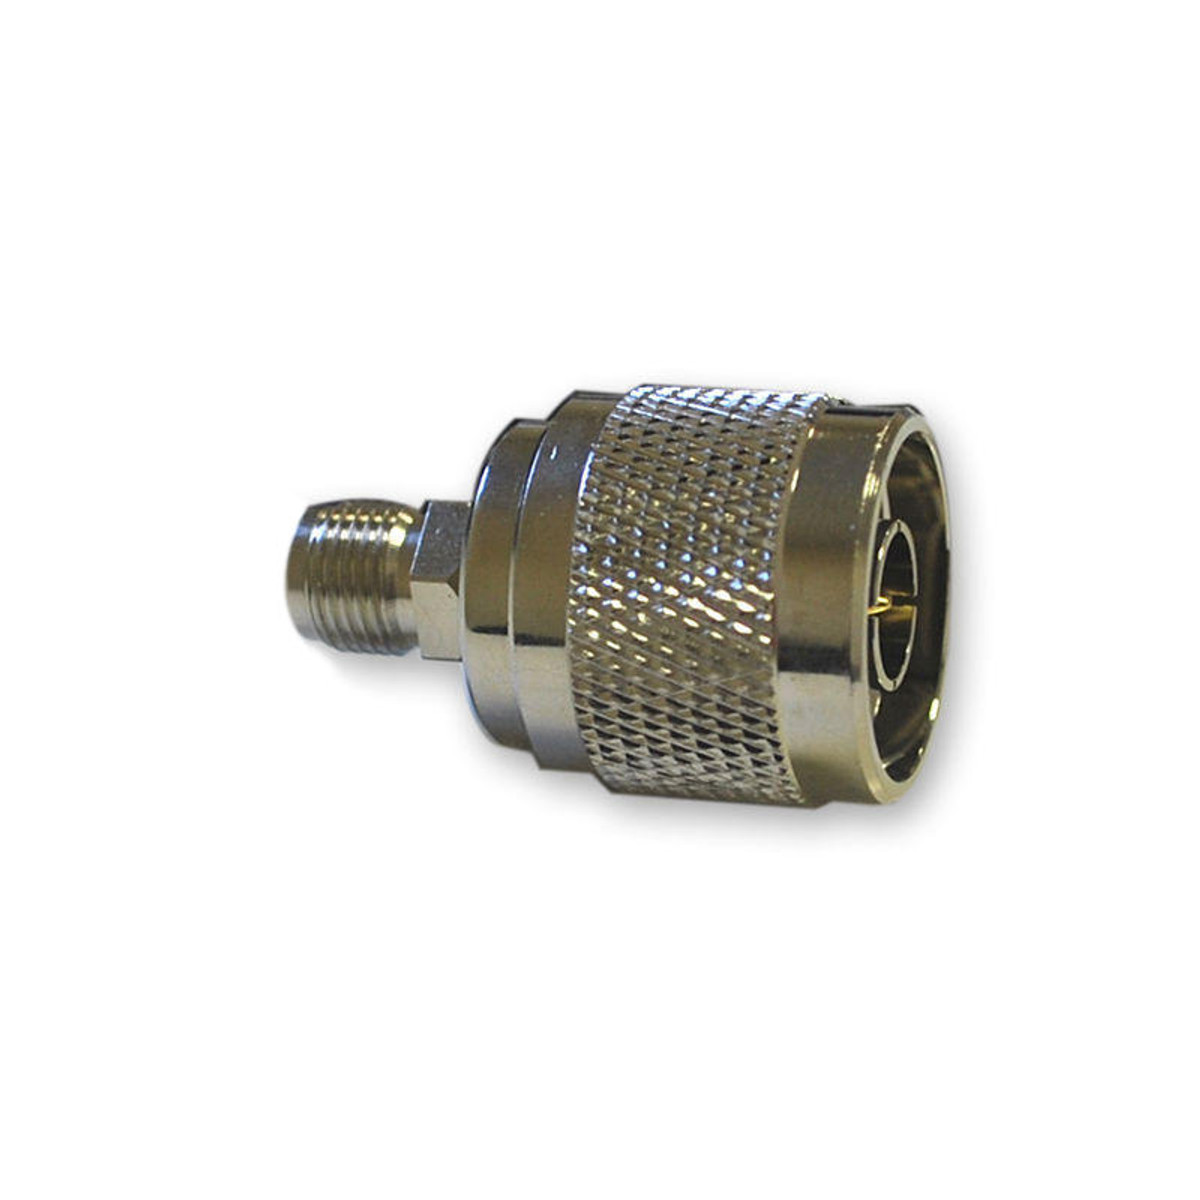 SureCall SureCall N-Male to SMA-Female Connector or SC-CN-02